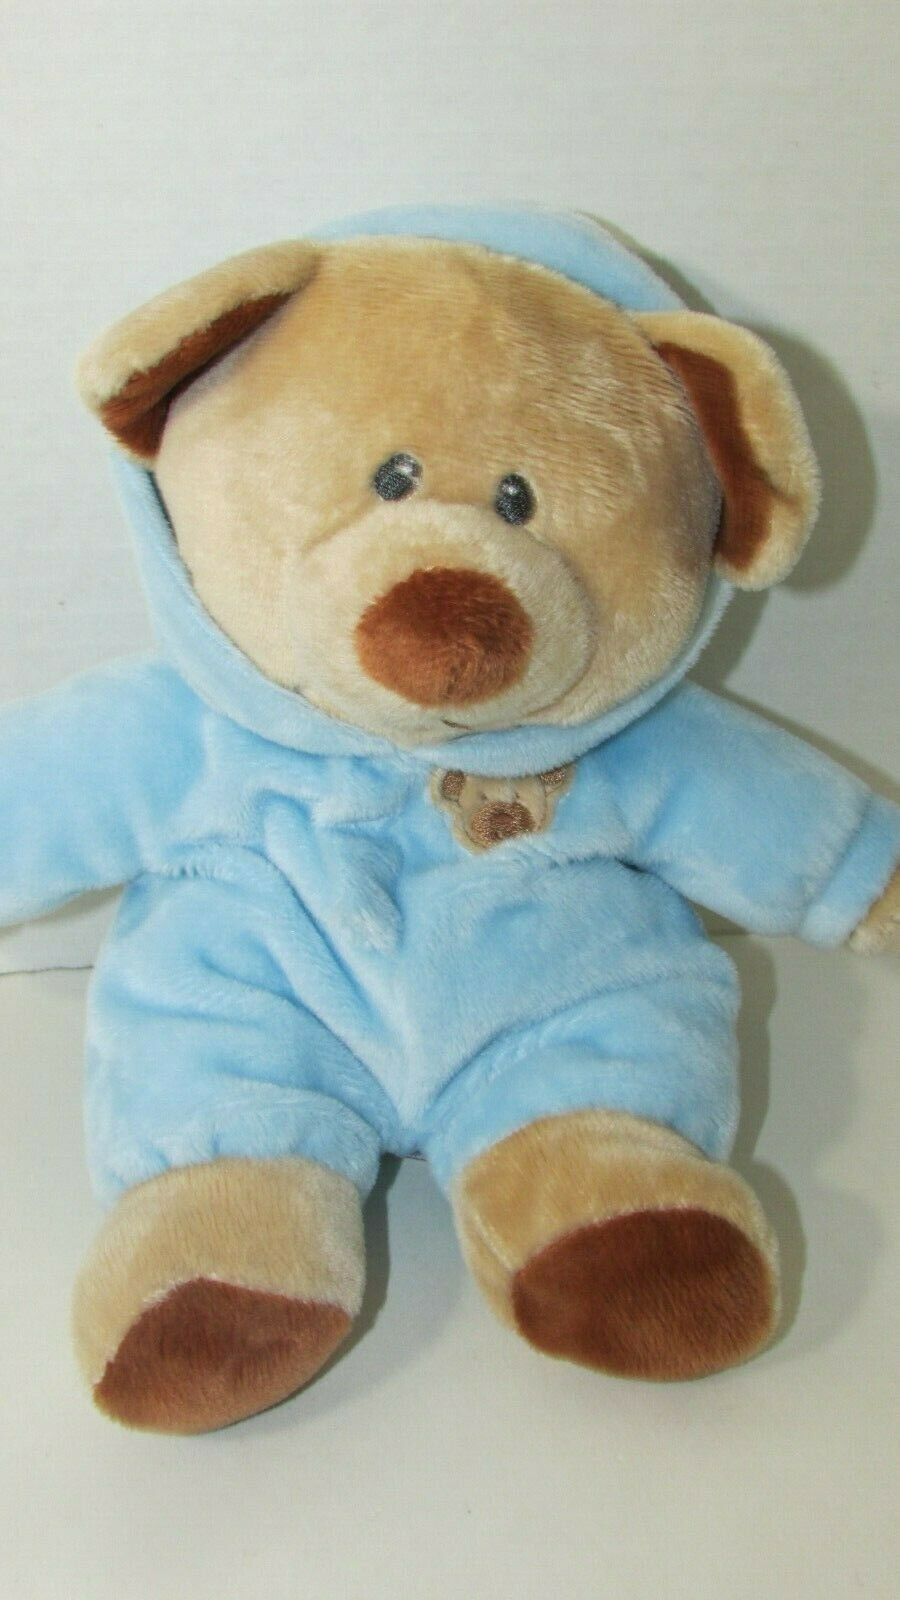 Ty tylux Pluffies tan Bear Blue attached hooded pajamas plush Love to Baby 2013